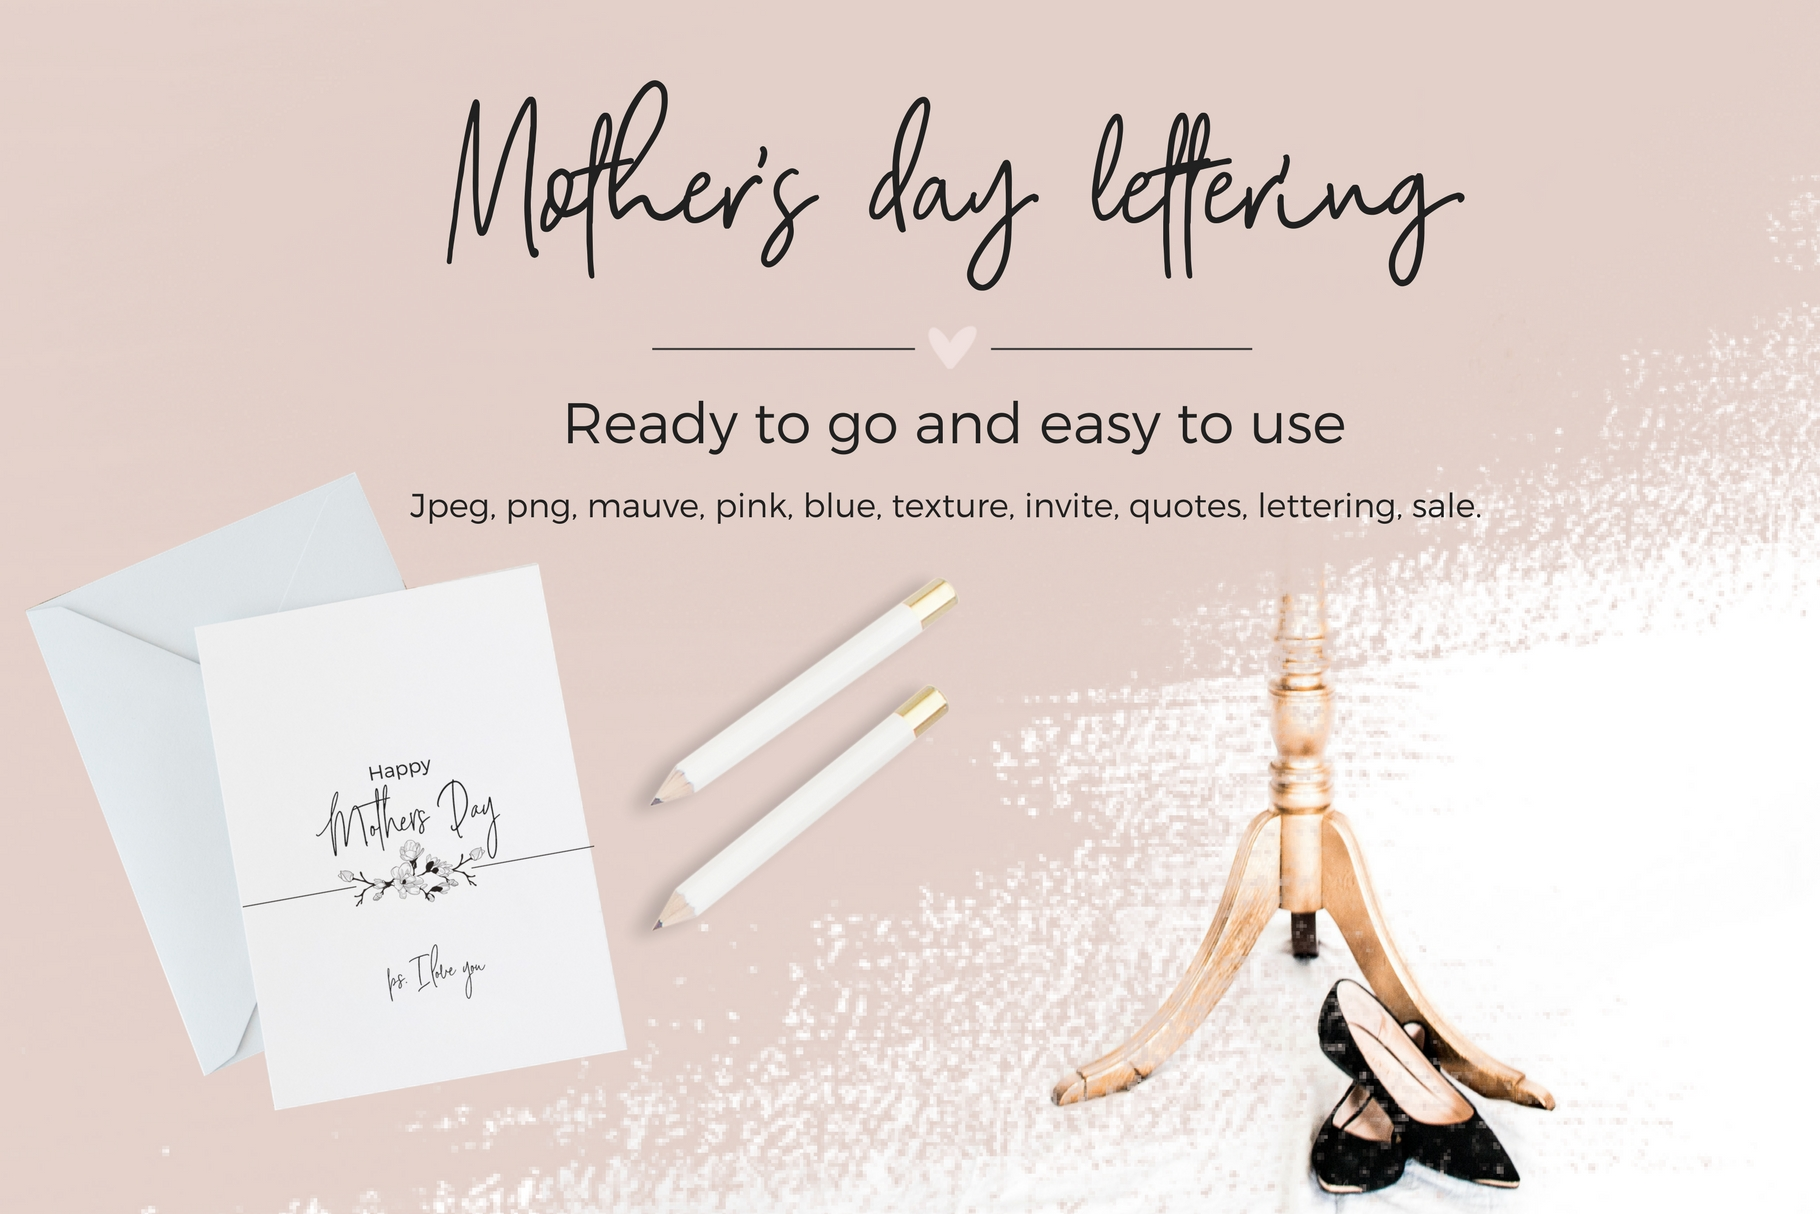 Mother's Day Lettering Graphic Web Elements By Creative Stash - Image 1